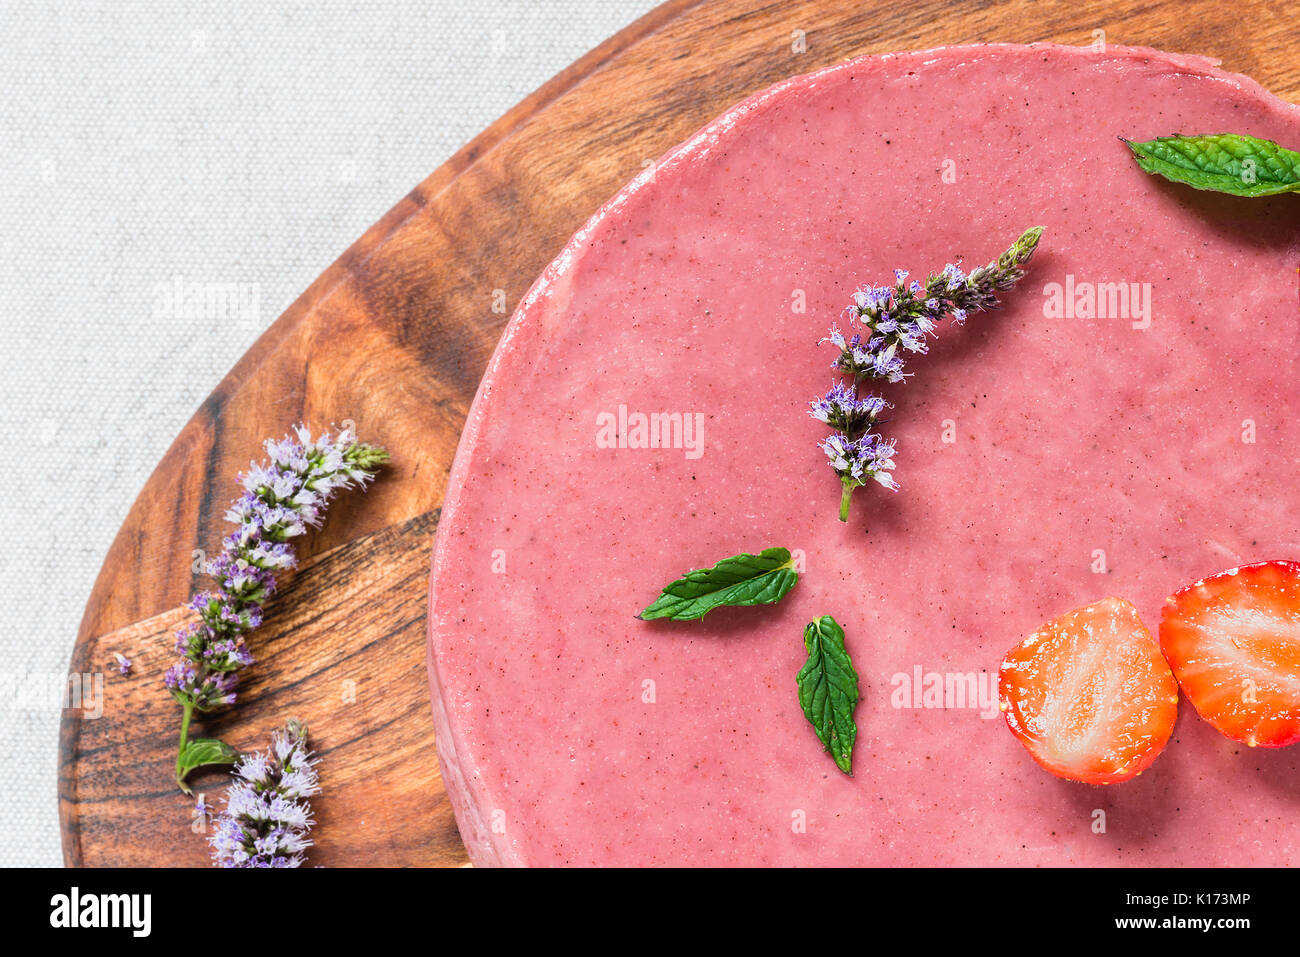 Raw healthy cheesecake, homemade with mint and strawberries. Top view, close up - Stock Image